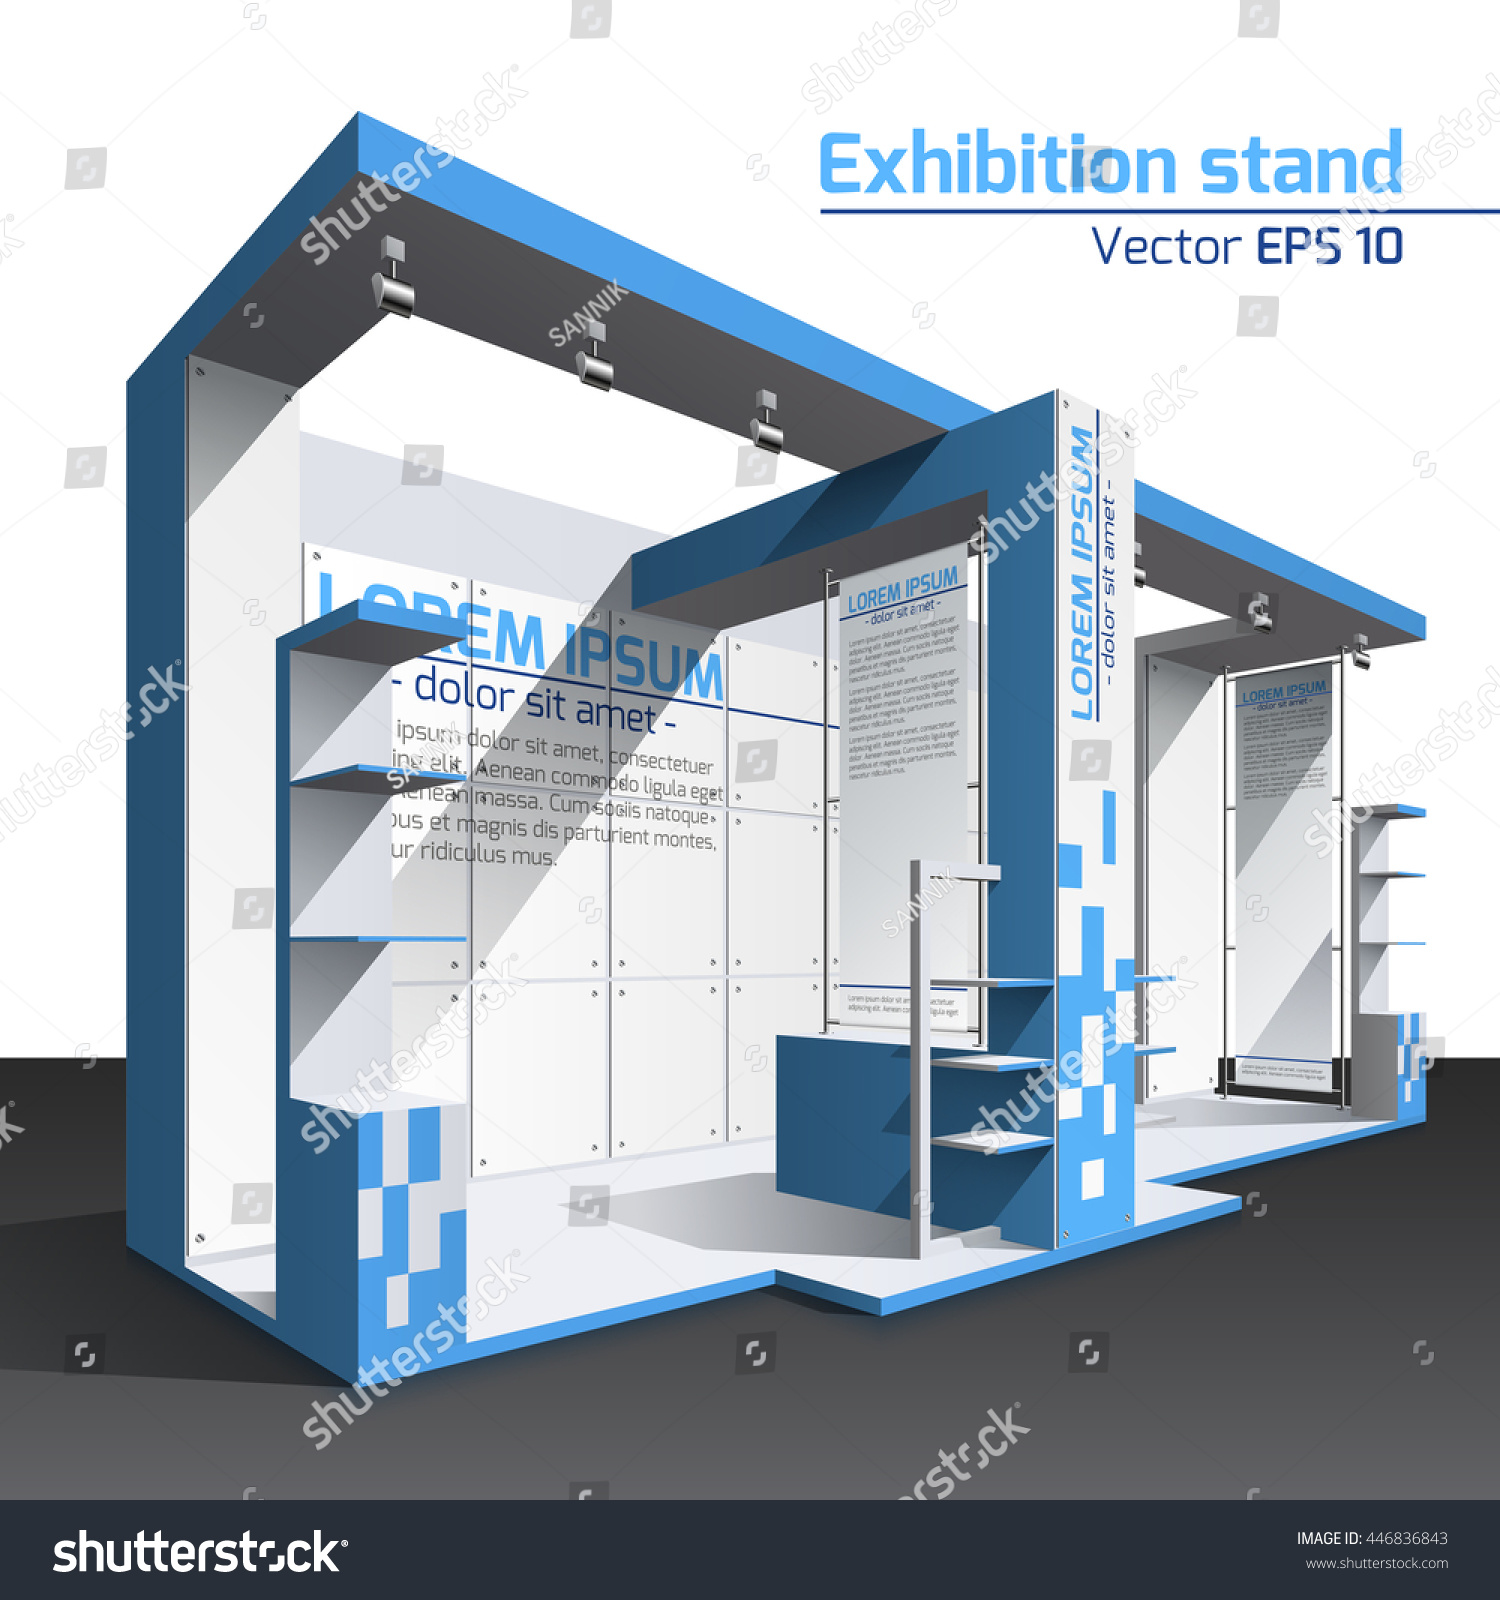 Exhibition Stand Design Vector : Realistic vector exhibition stand design blue stock